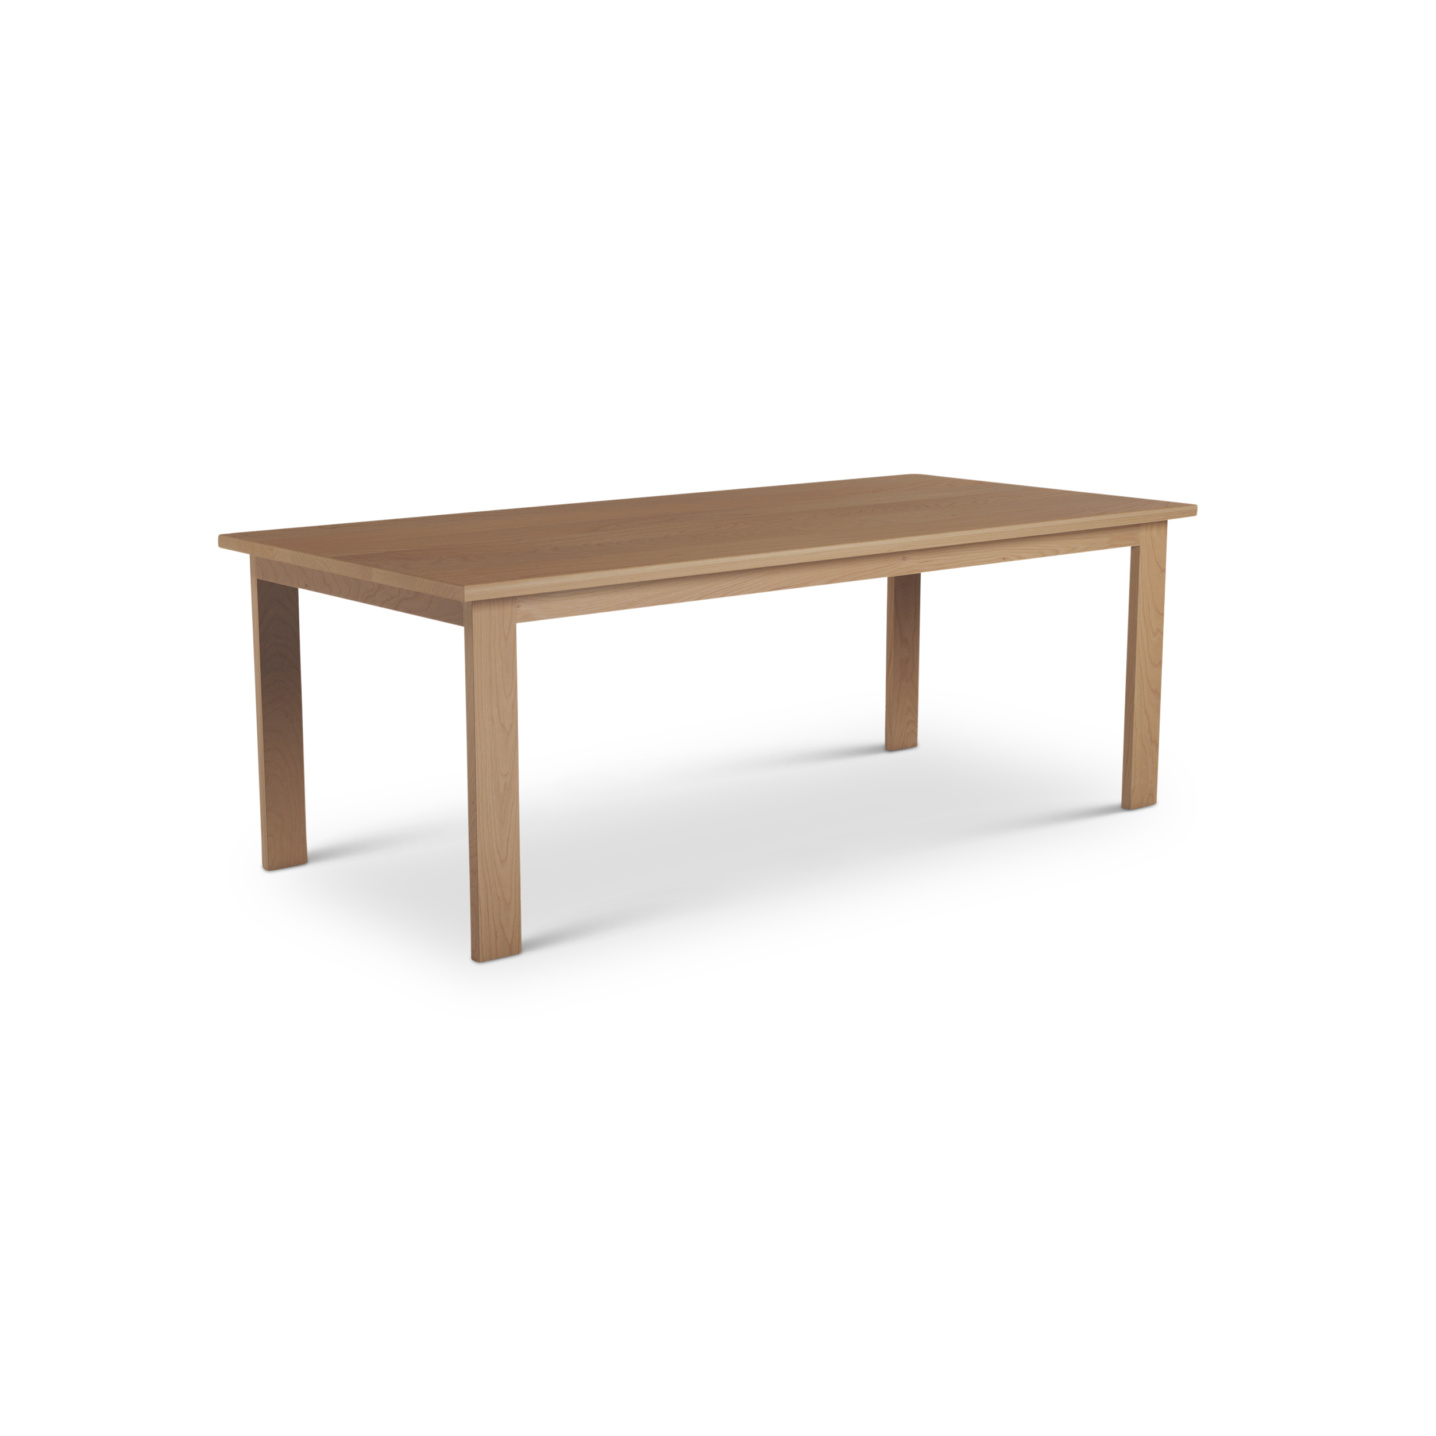 Cherry Wood Table in a Scandinavian Style